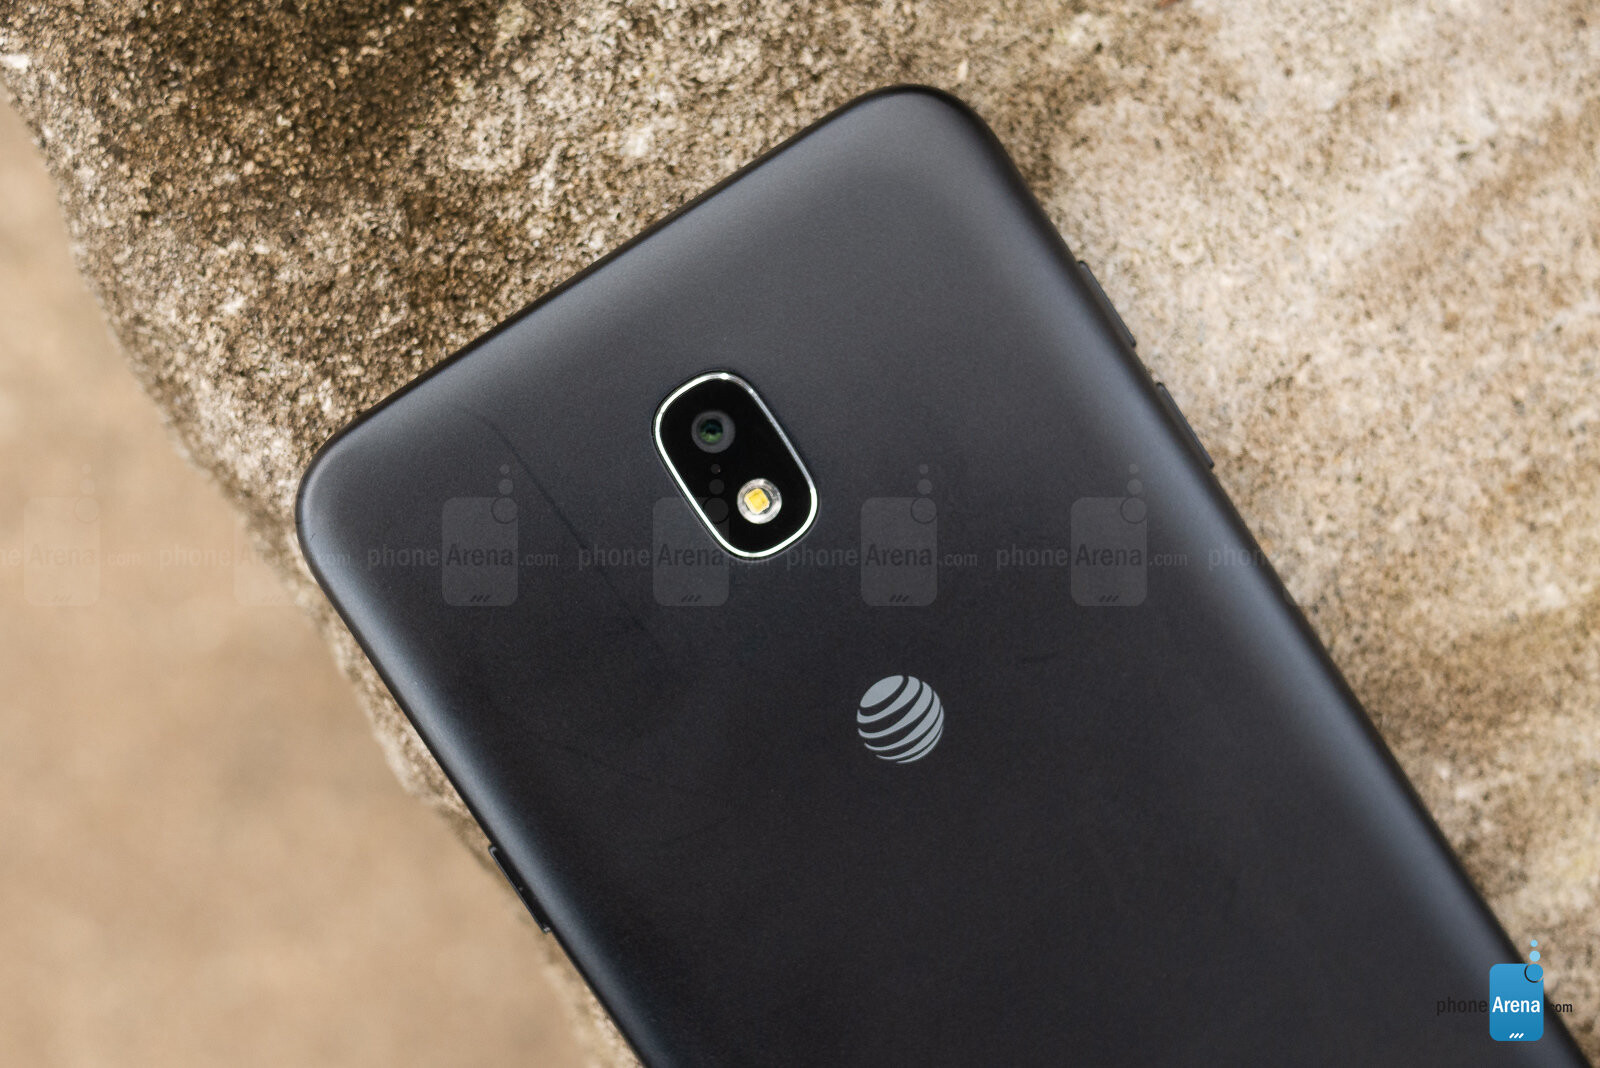 Samsung Galaxy J7 for AT&T (2018) Review - PhoneArena